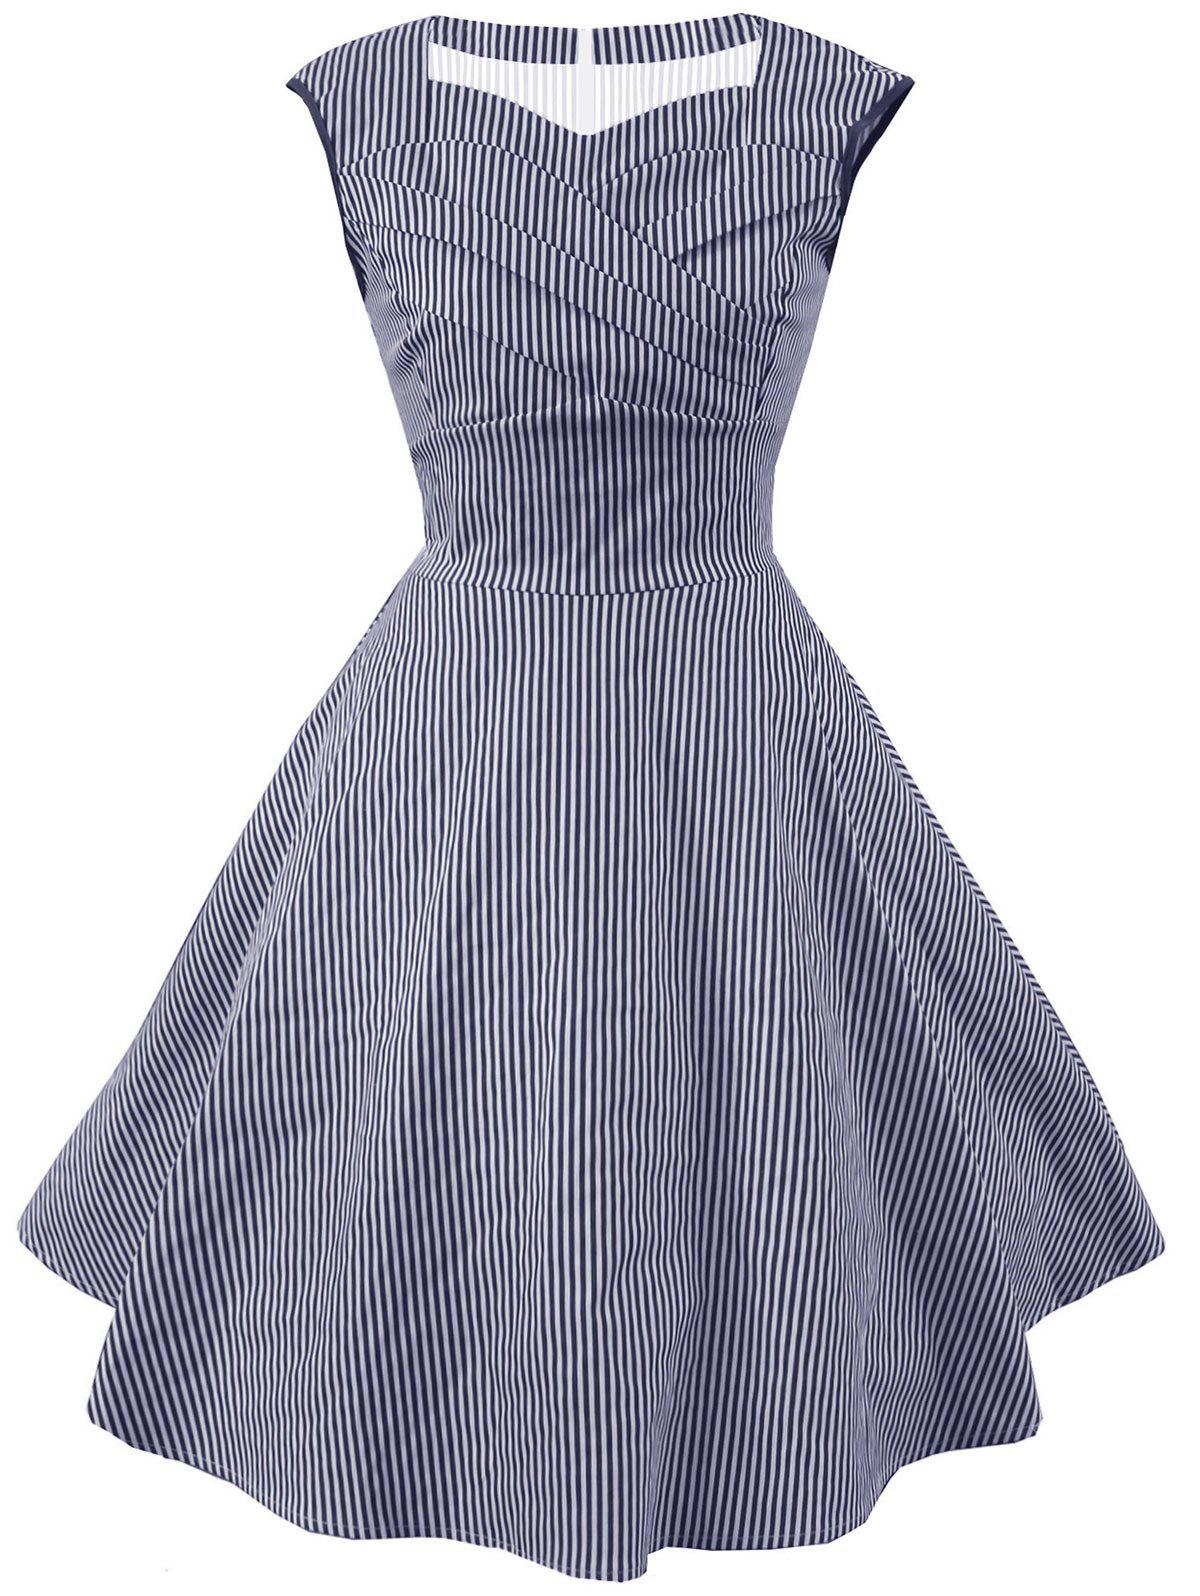 Chic Striped Cap Sleeve Party Dress